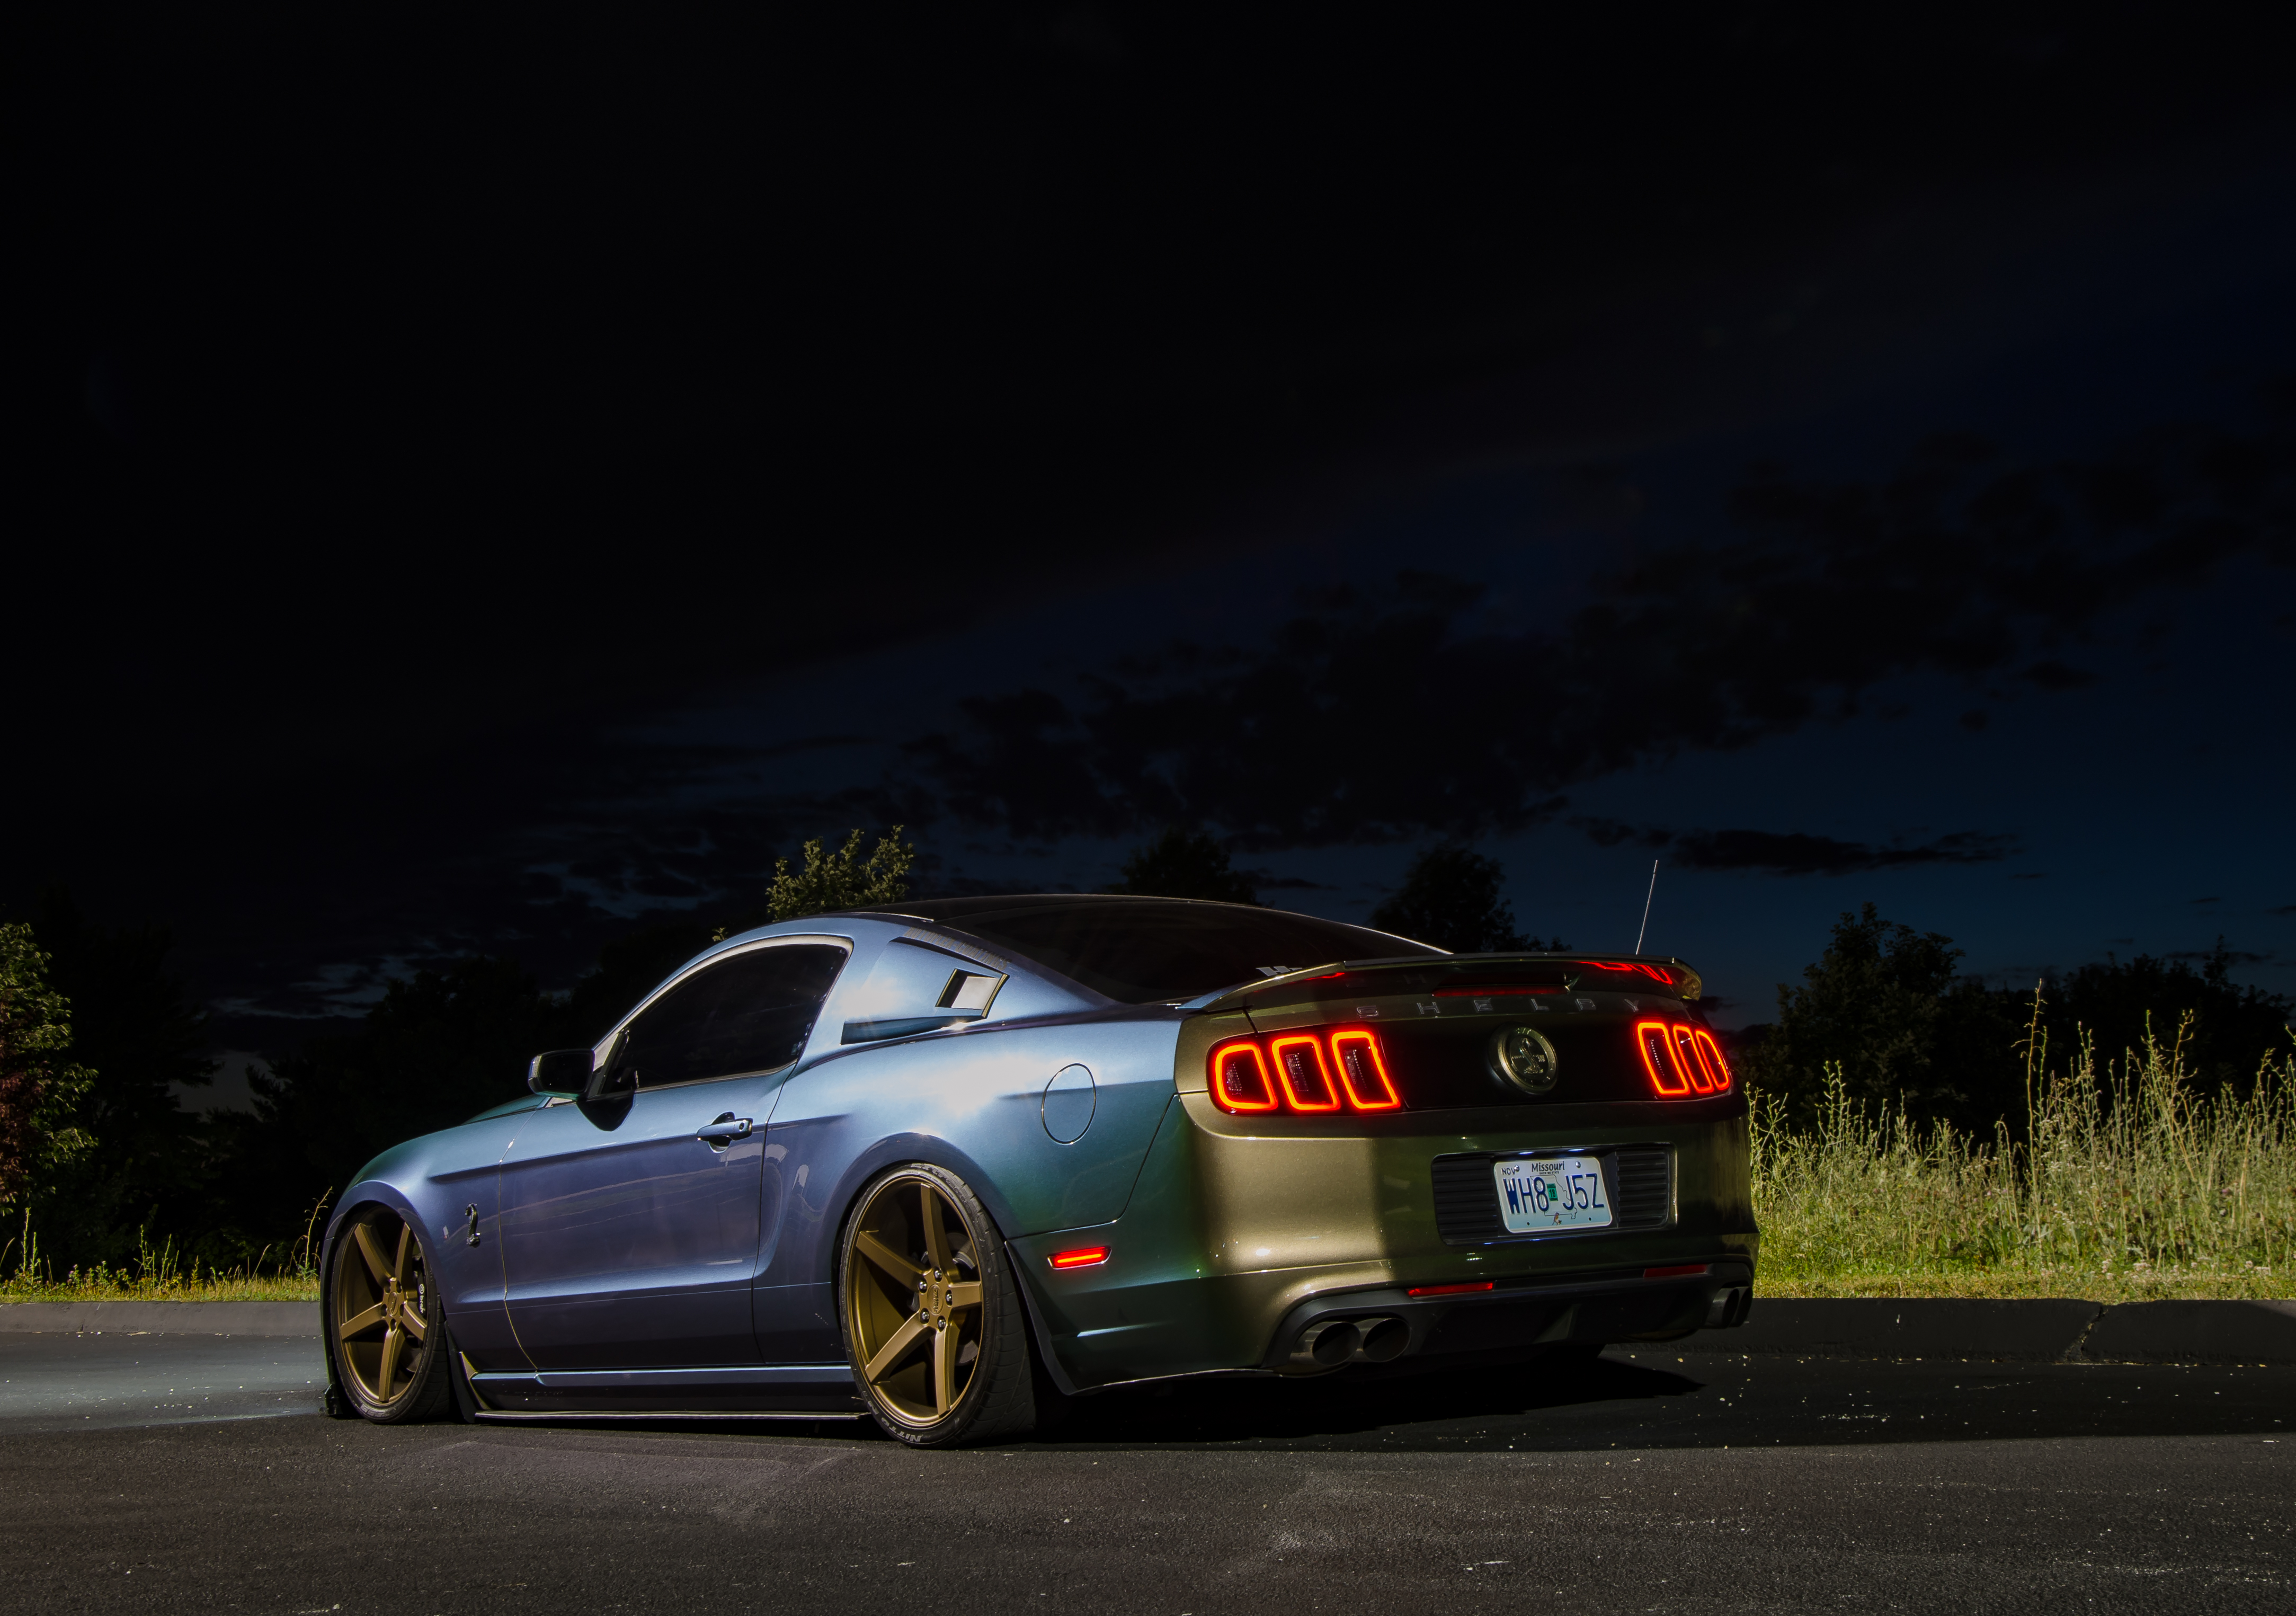 2010%20ford%20shelby%20mustang%20rear%20sidemarkers%20smoked%20owner%20ig%20@85shelby2010%20(2).jpg